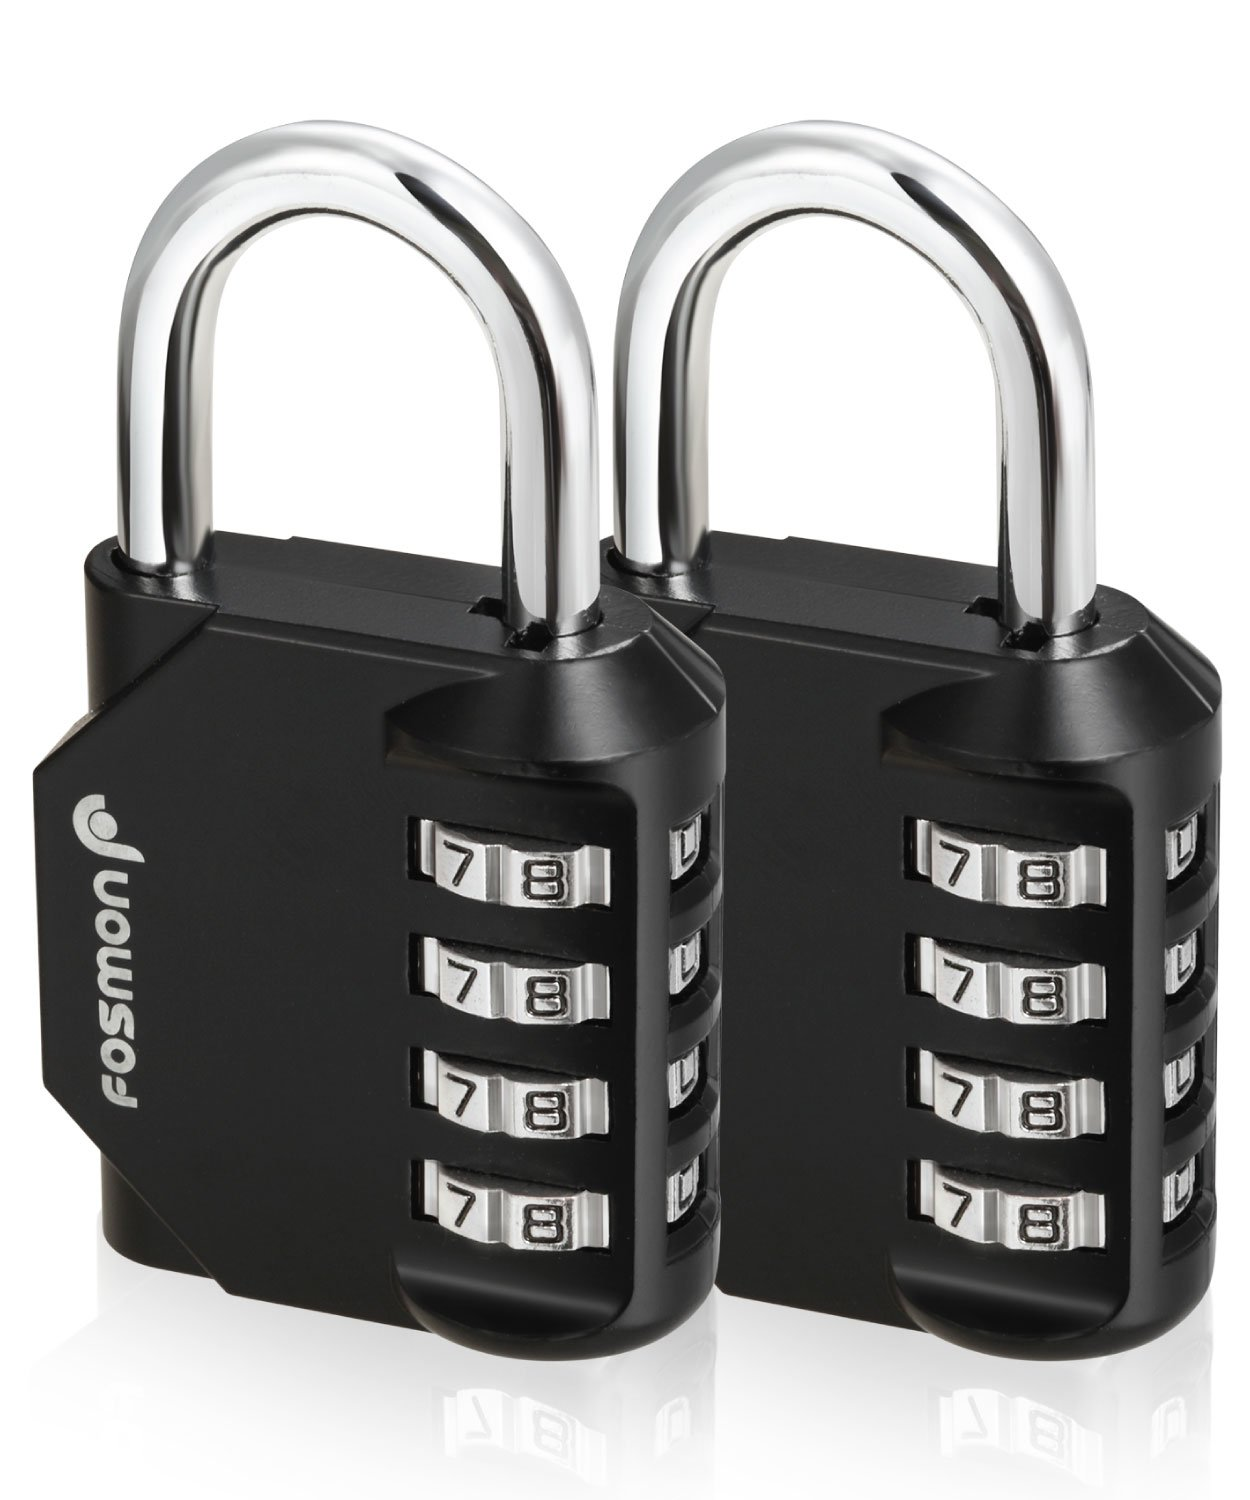 Fosmon Combination Lock (2 Pack) 4 Digit Padlock with Metal Alloy Body for School, Gym Locker, Gate, Bike Lock, Hasp and Storage - Black